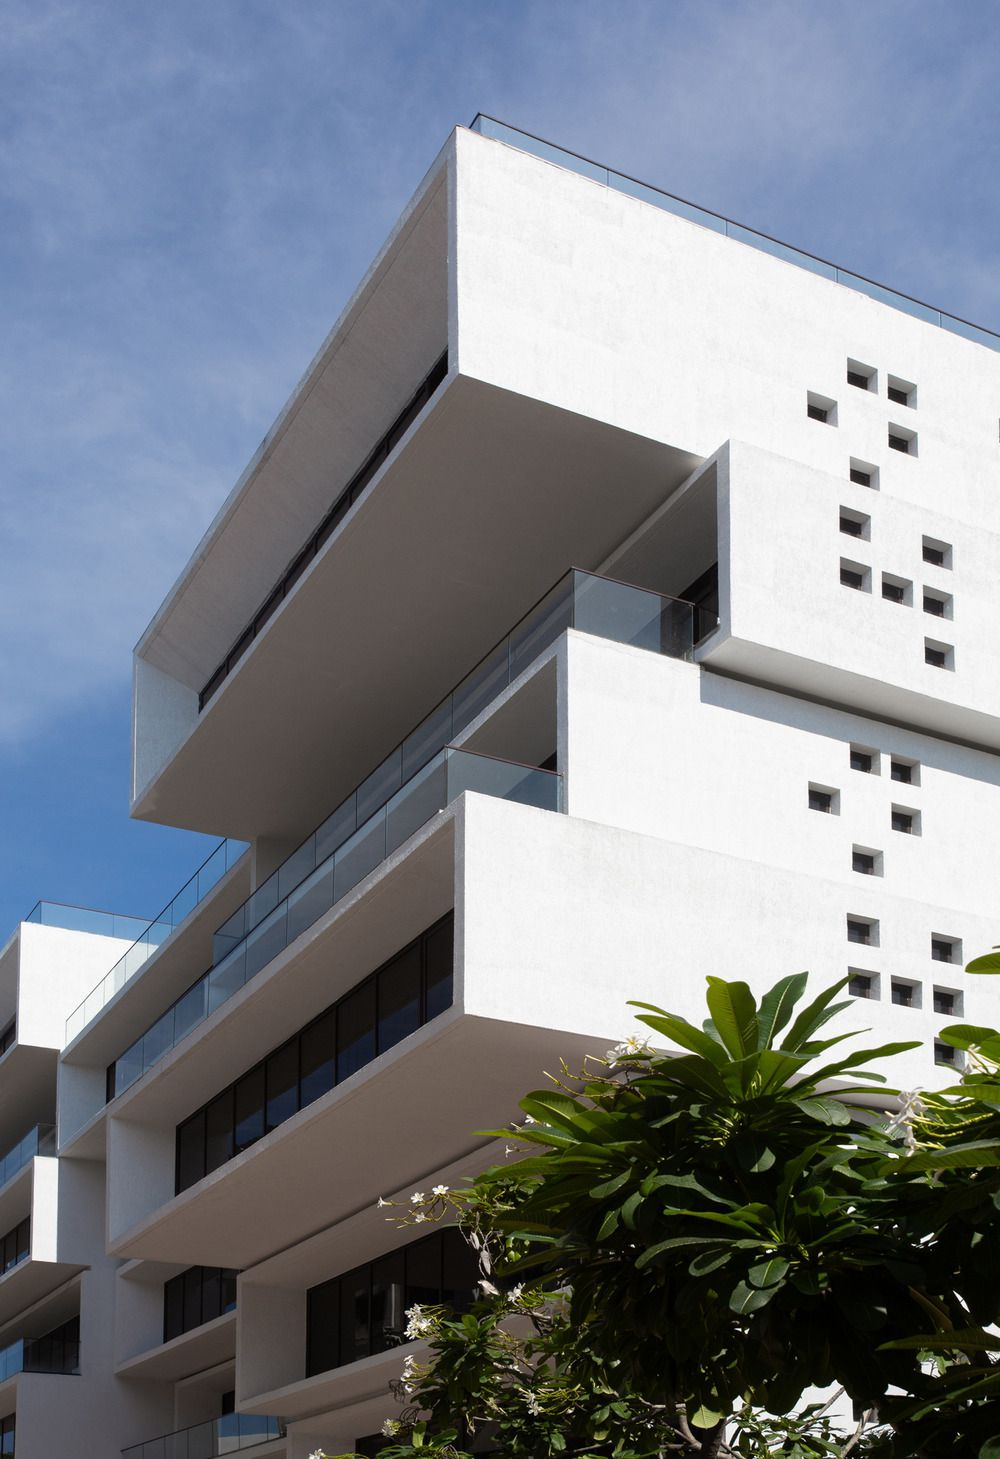 DISCOVER A SCULPTURAL OFFICE BUILDING 'AKSHAYA 27' IN CHENNAI, INDIA BY SANJAY PURI ARCHITECTS